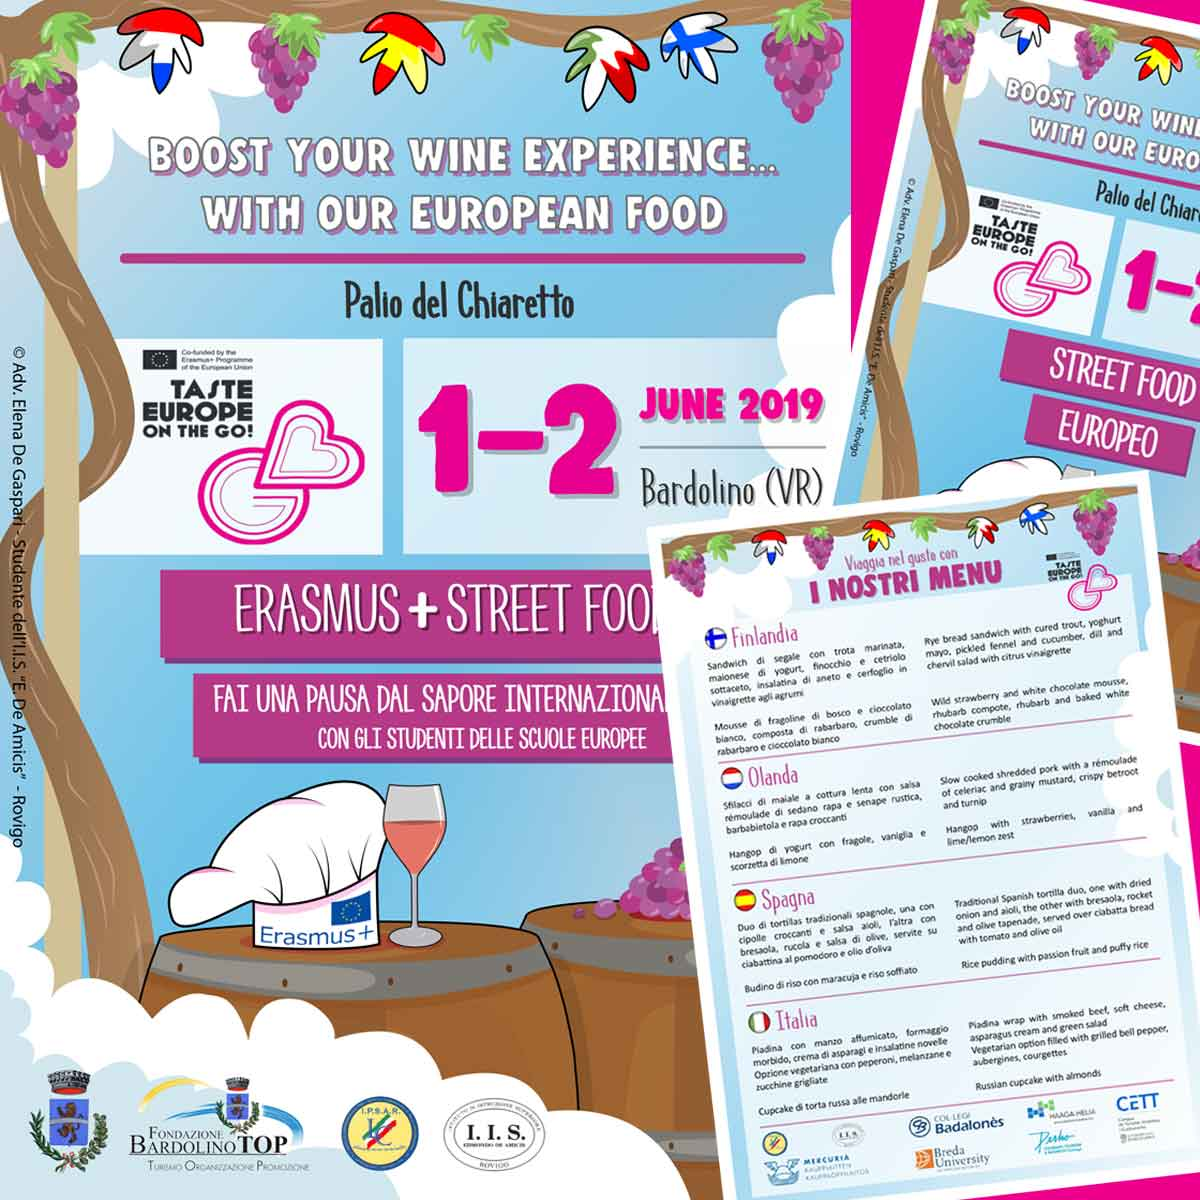 Erasmus+ Taste Europe on the Go!